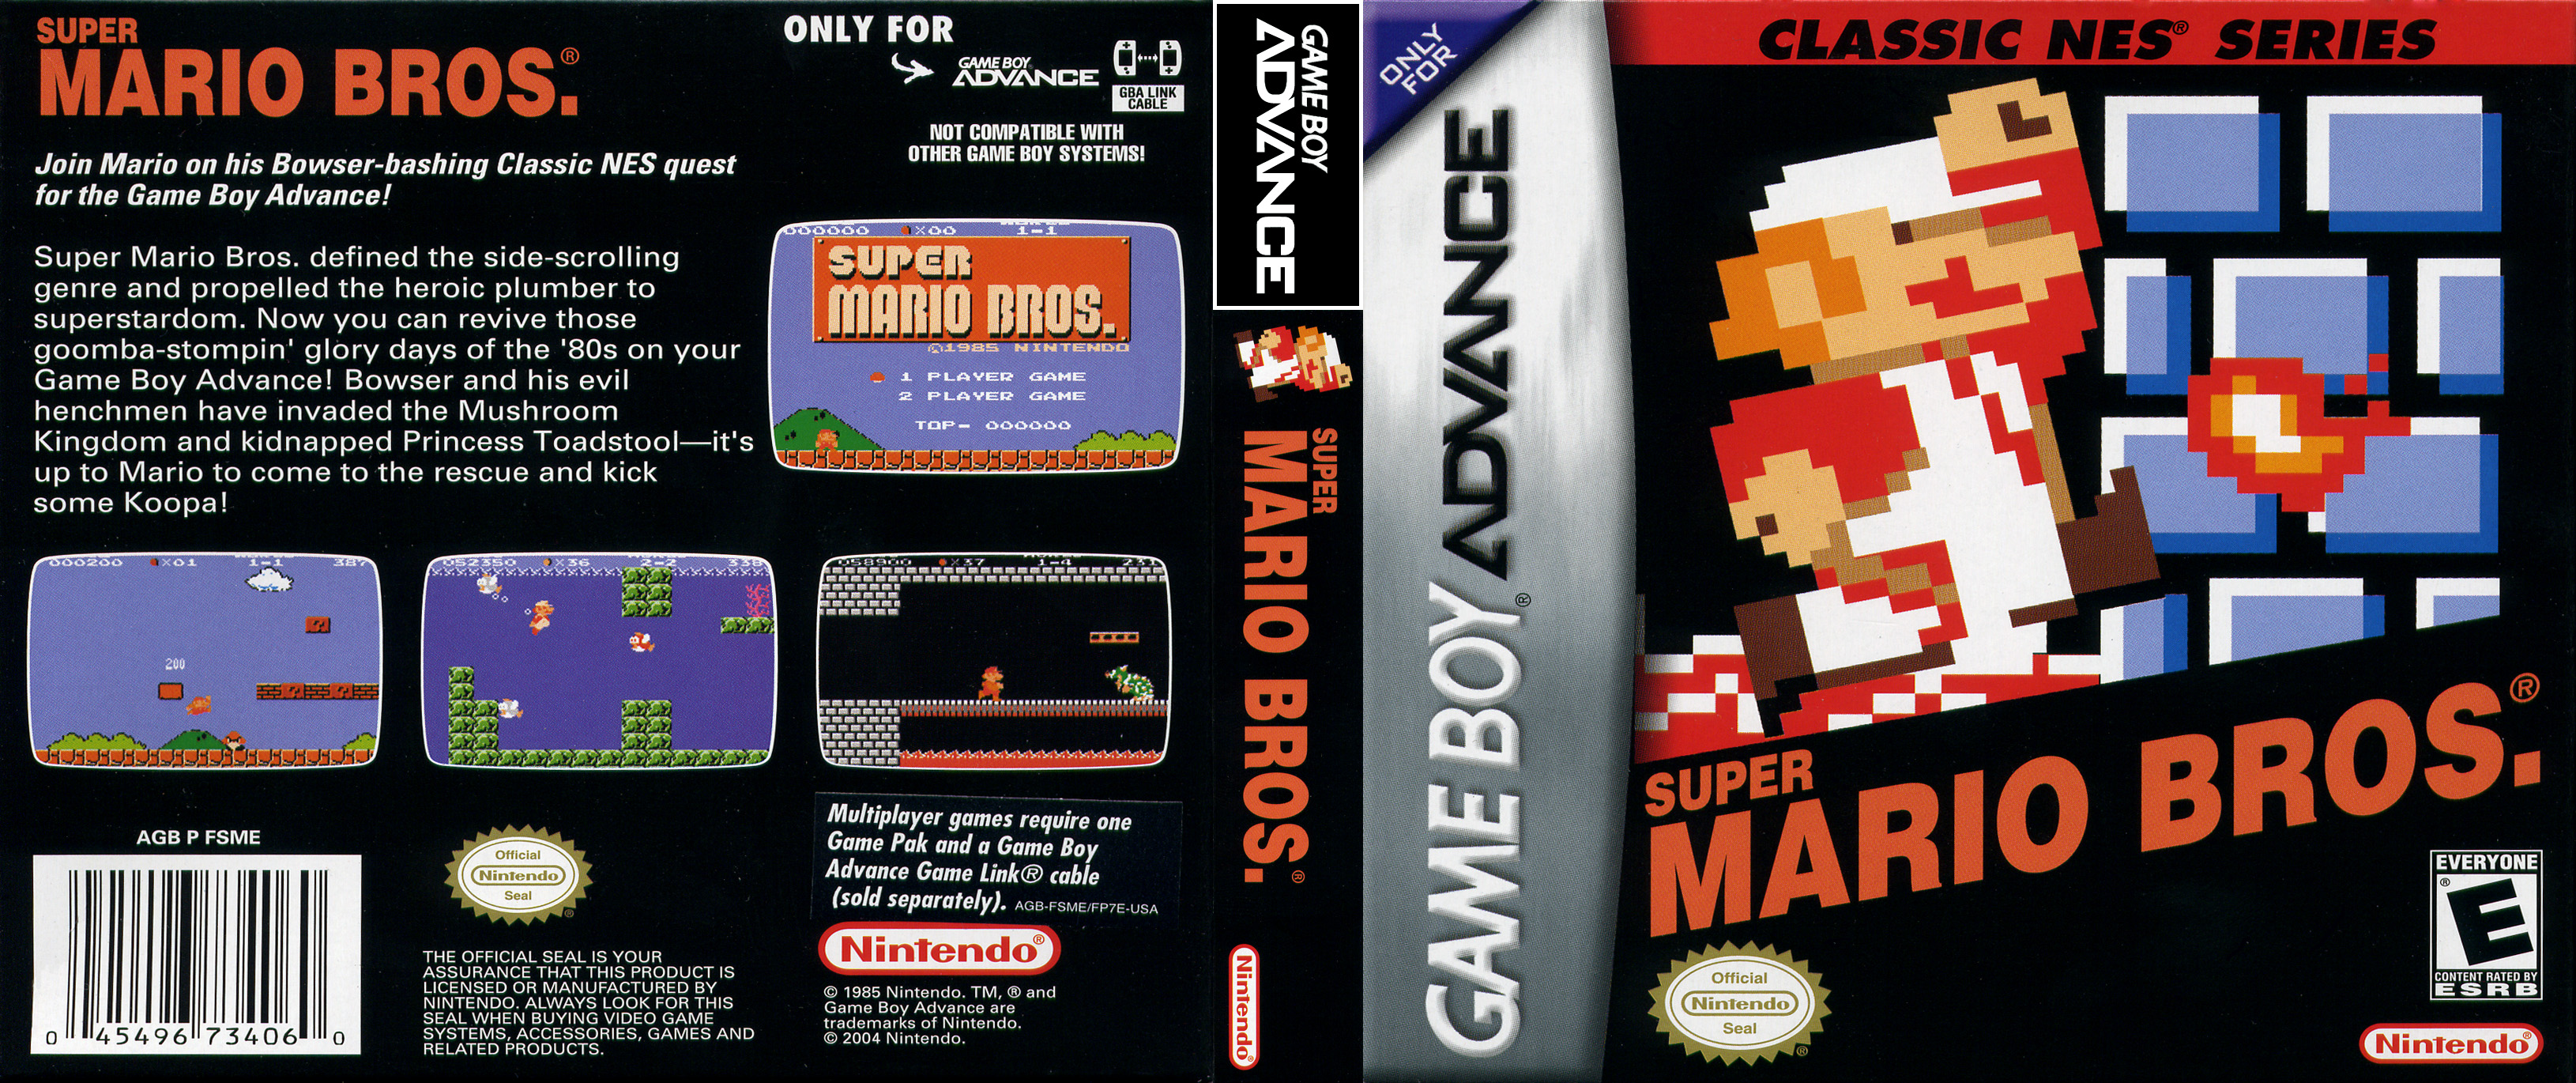 Super Mario Bros Gameboy Advance Covers Cover Century Over